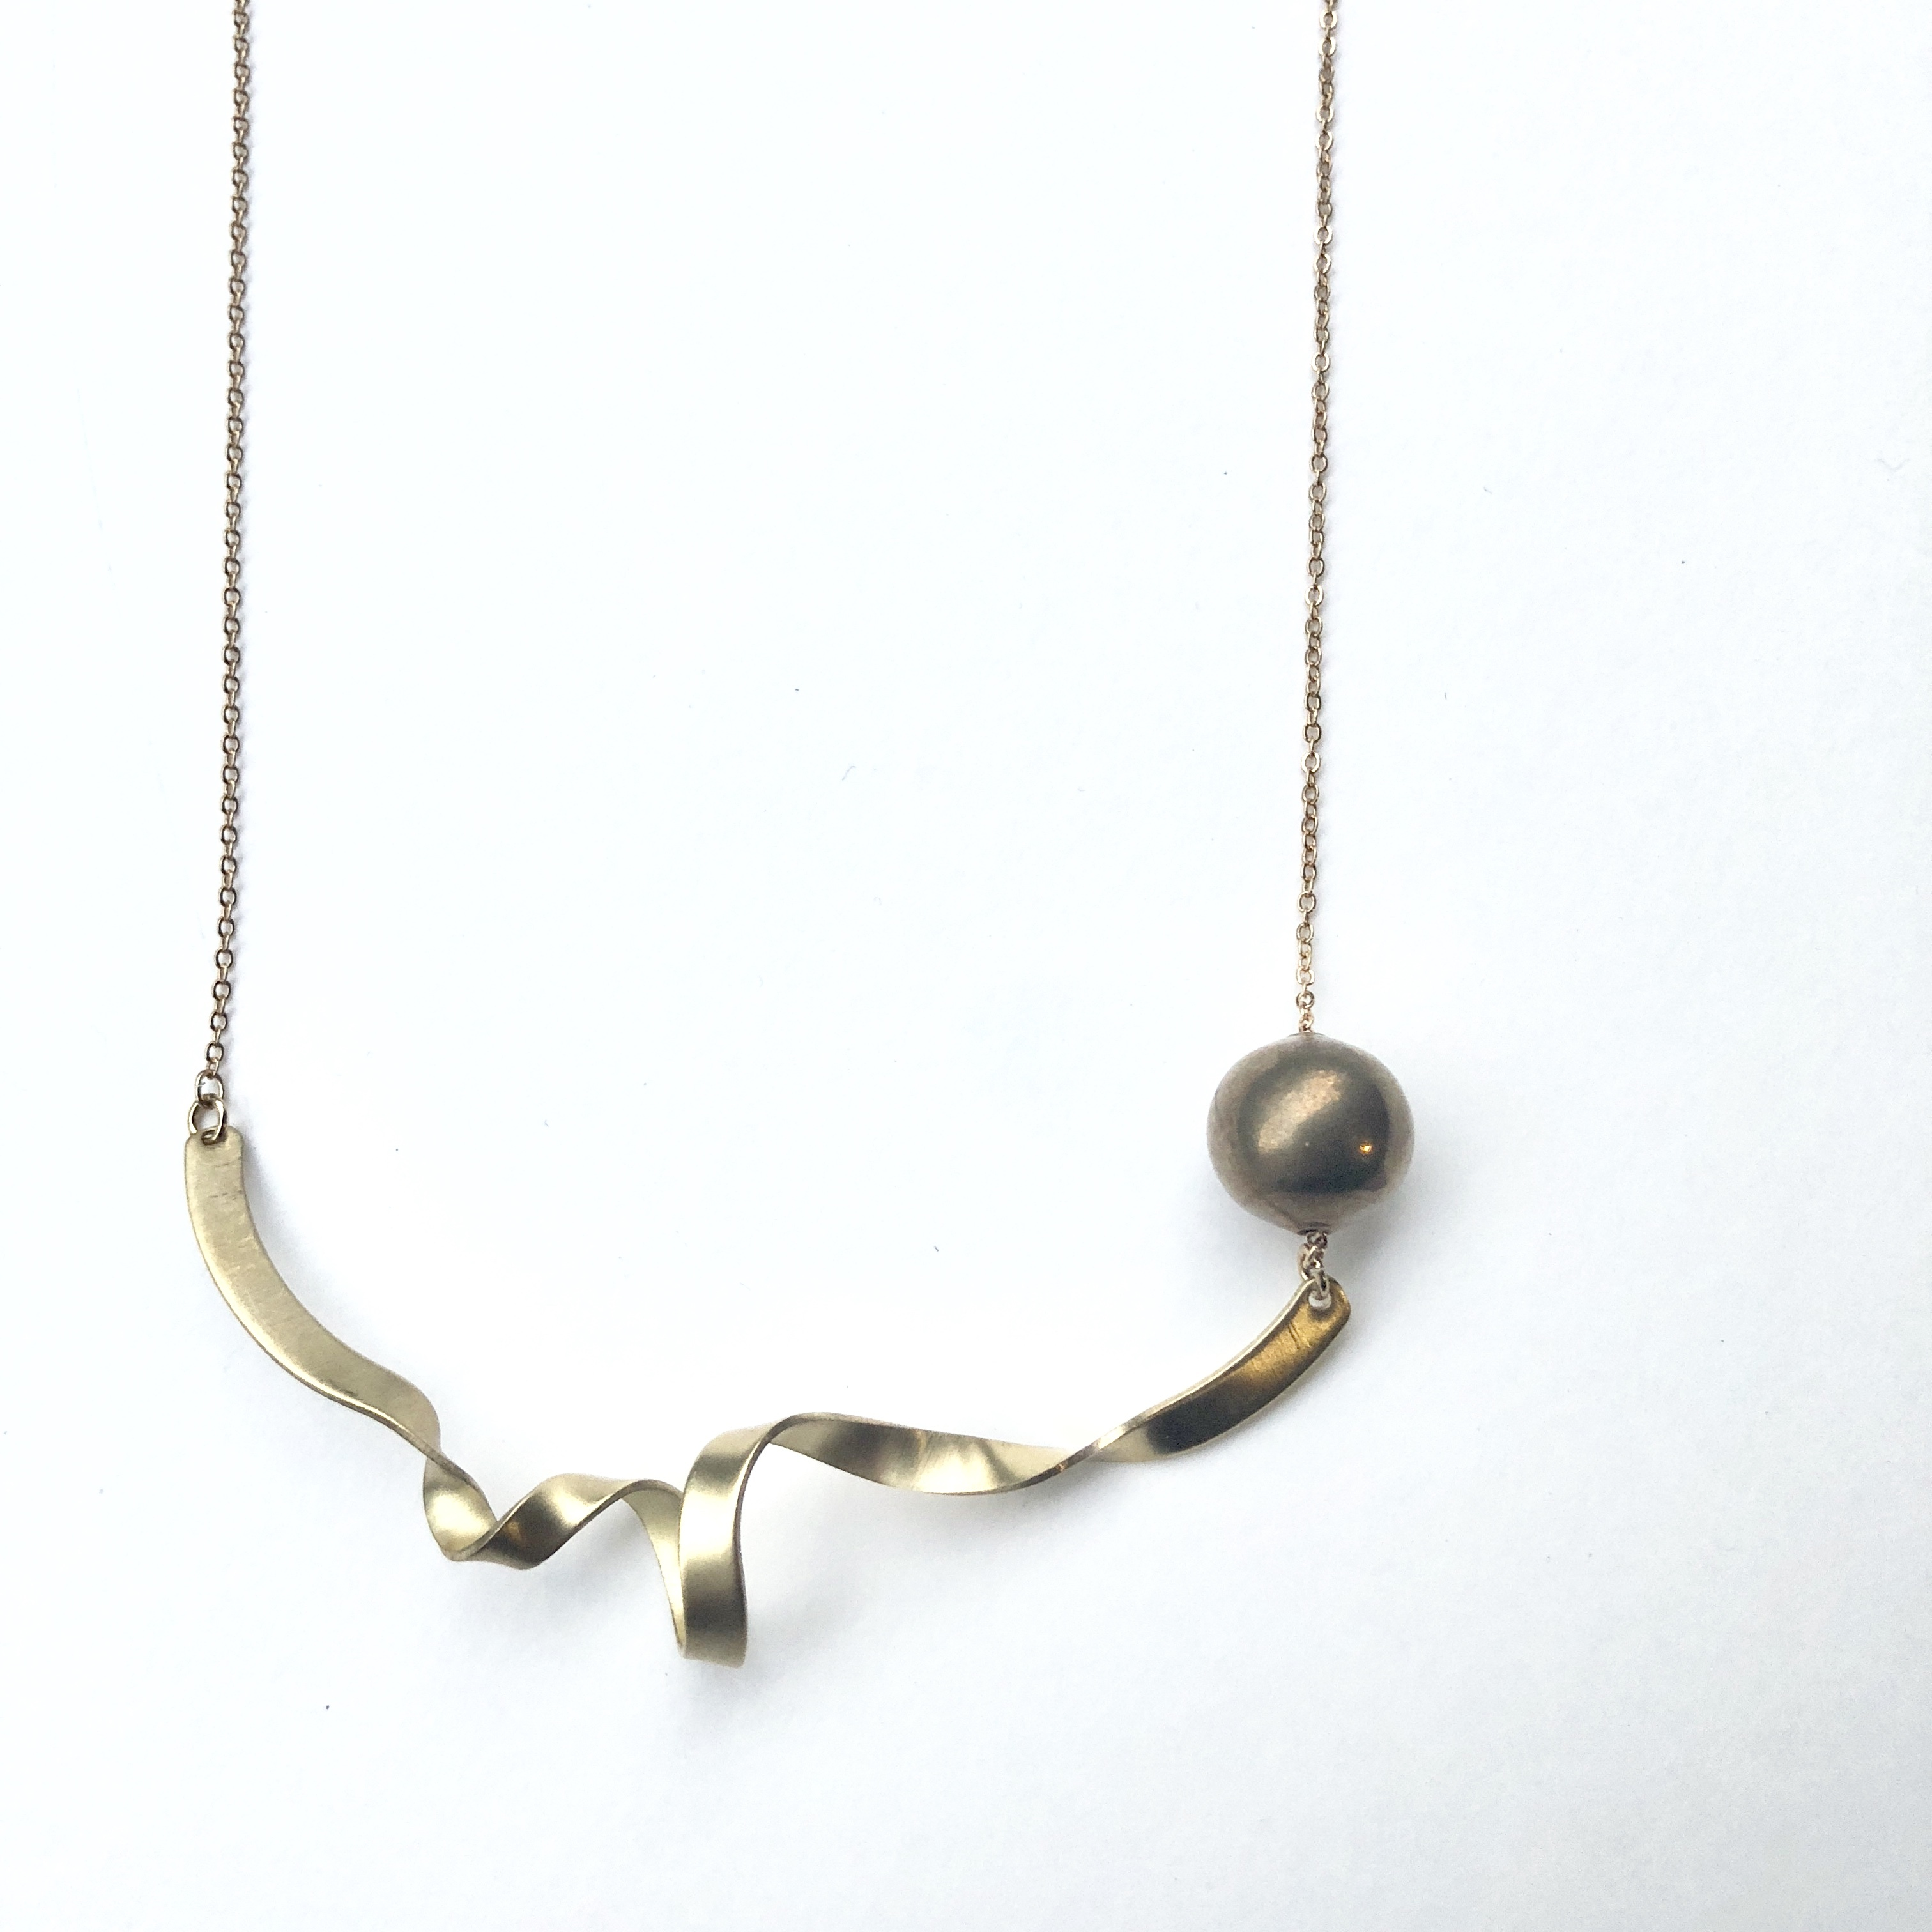 Whirl wave nacklace No. 103